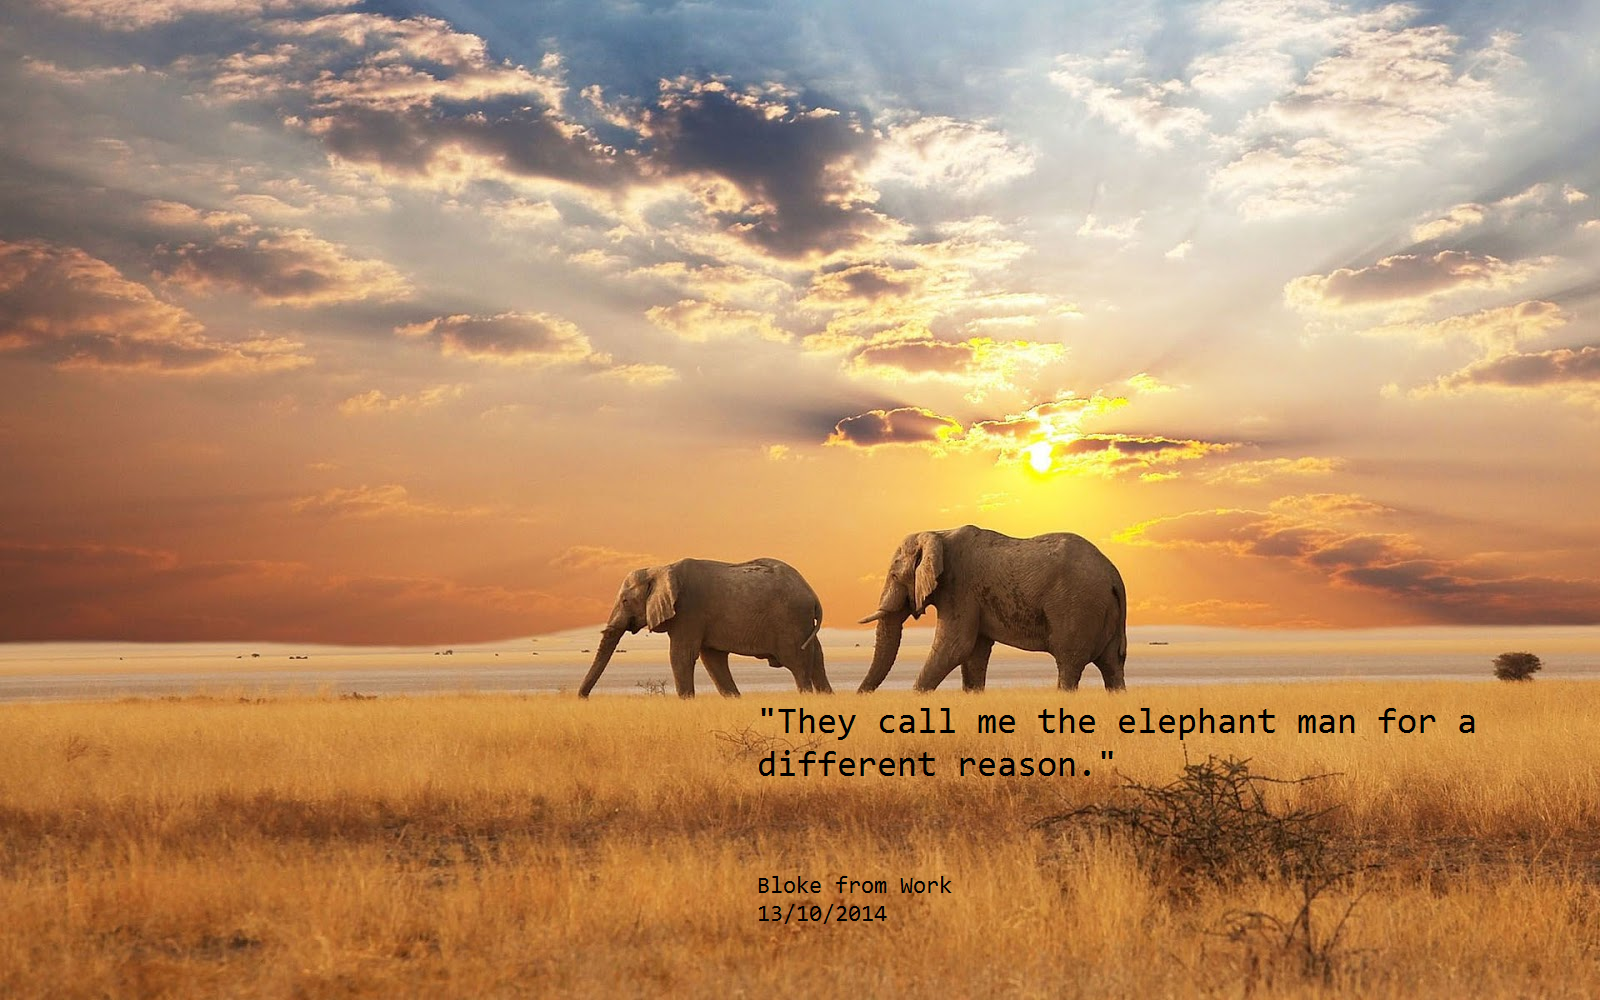 Elephant Quotes | Elephant Bloke From Work Quotes